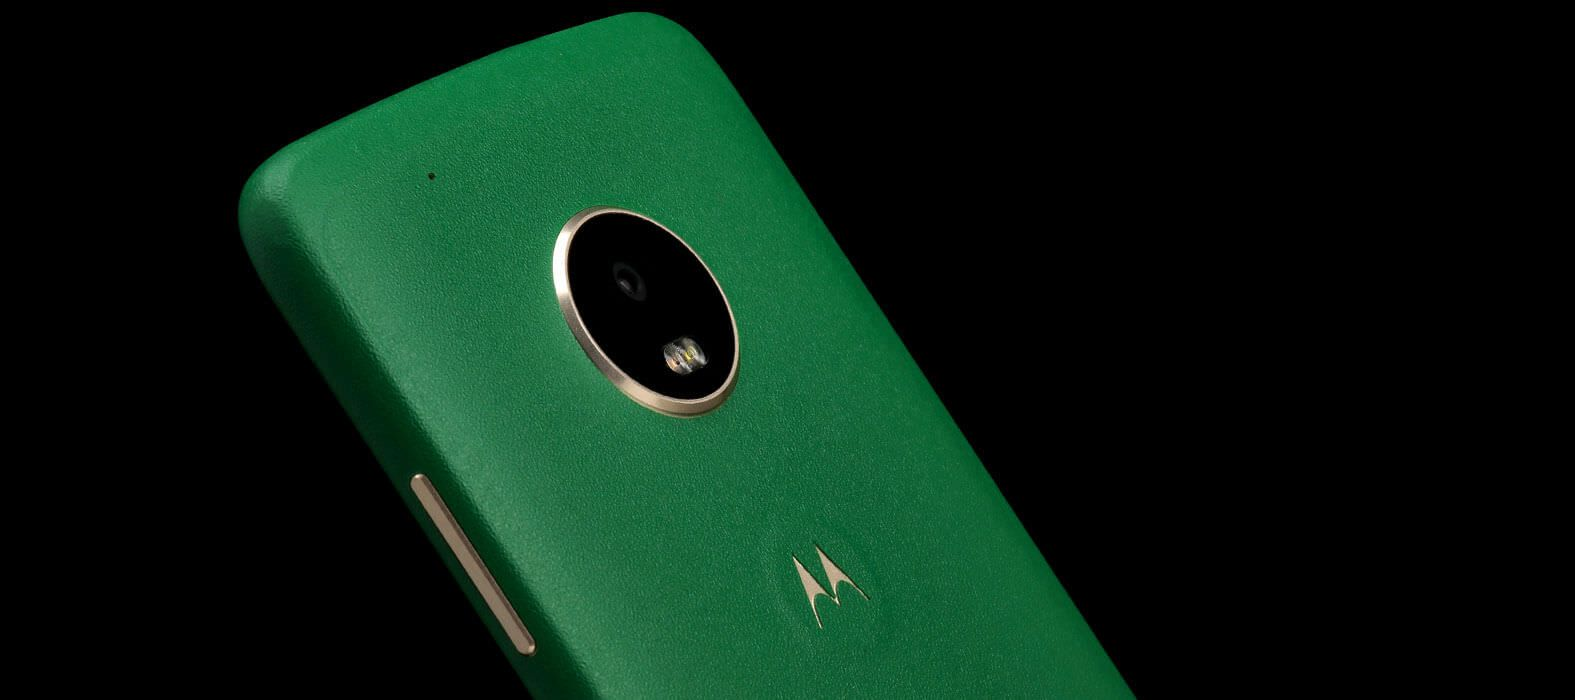 Moto G5 Plus sandstone green skins & wraps